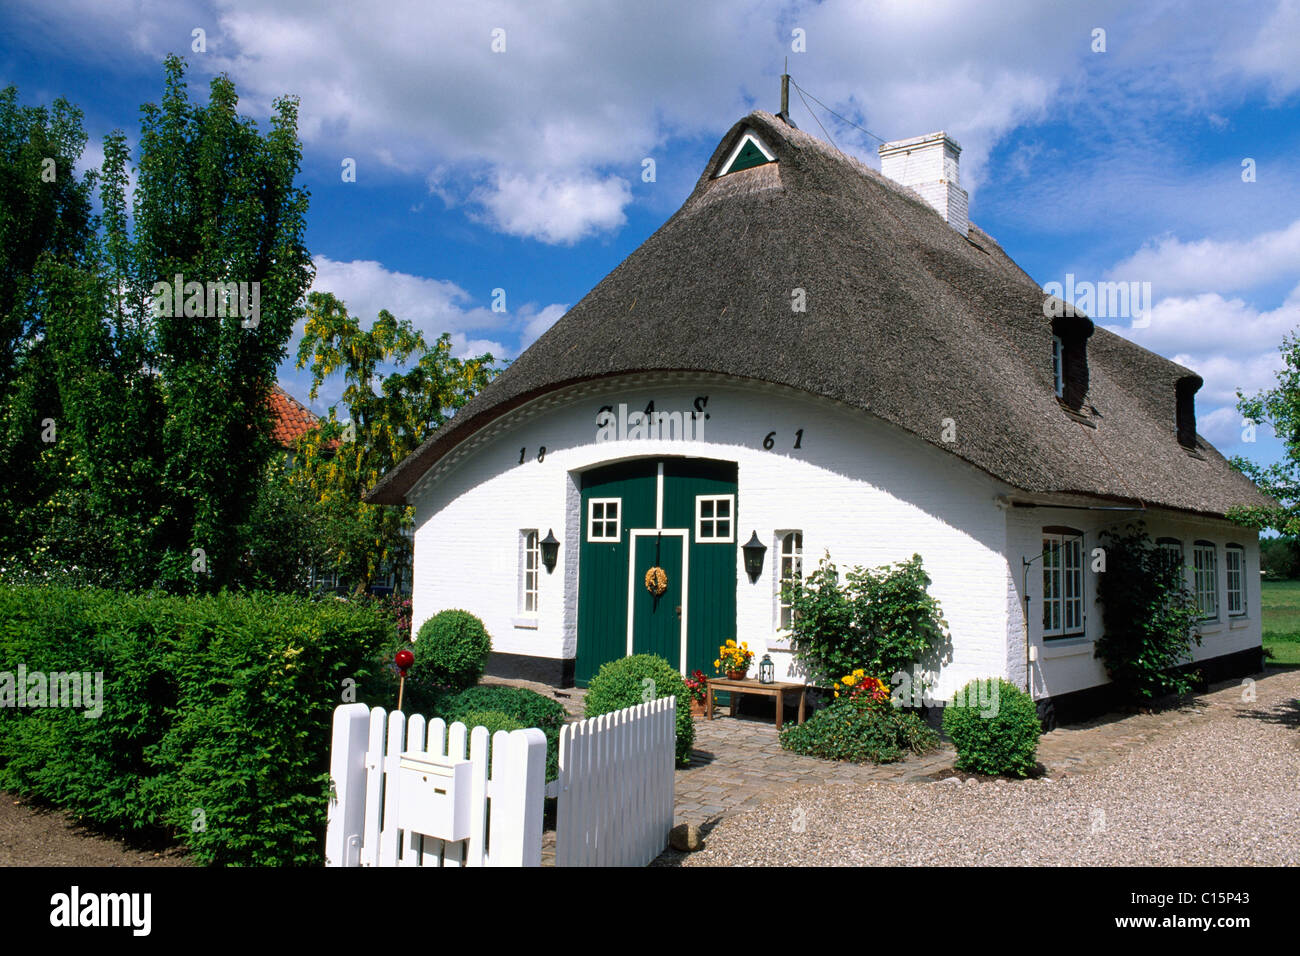 Thatch Stock Photos Amp Thatch Stock Images Alamy